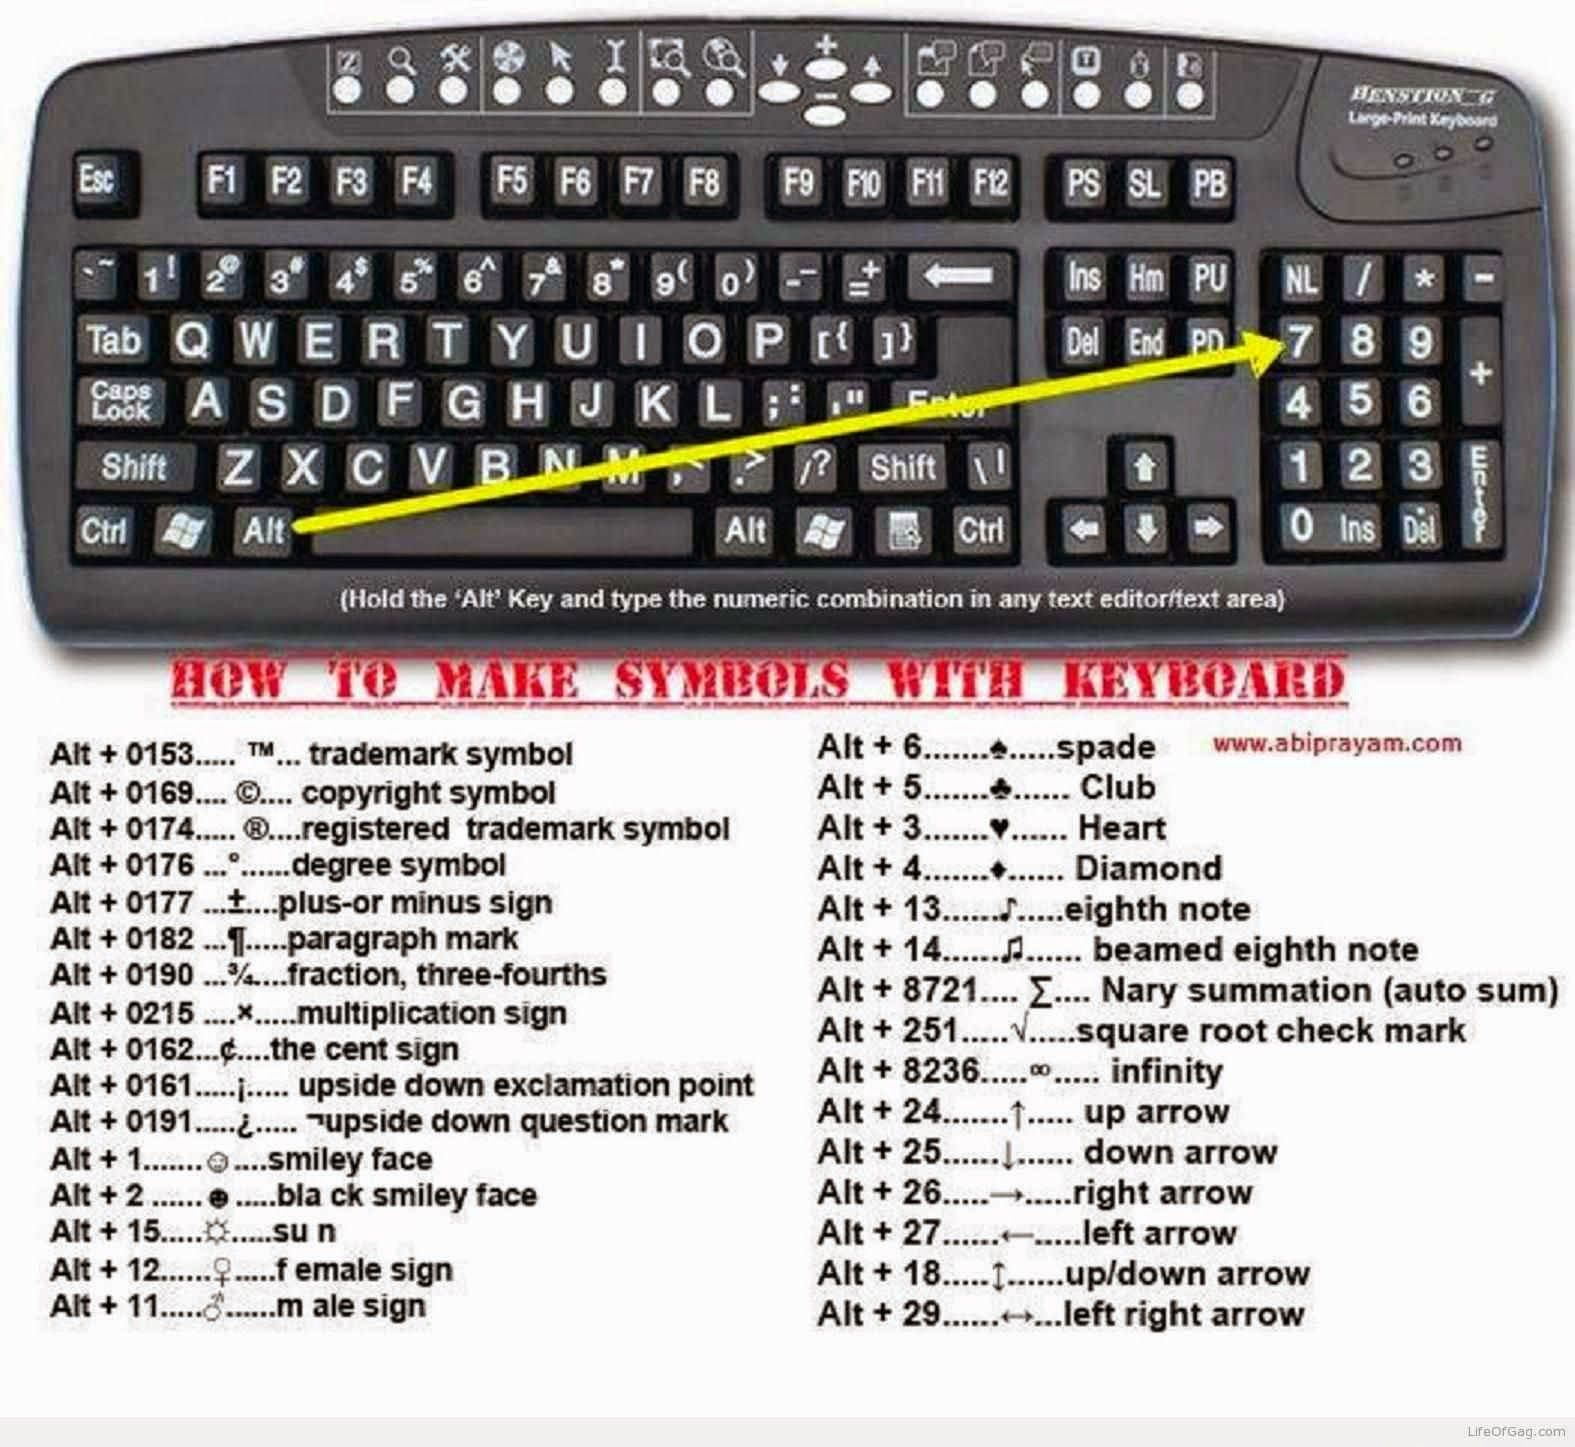 How to make symbols with keyboard electrical engineering world how to make symbols with keyboard electrical engineering world biocorpaavc Gallery